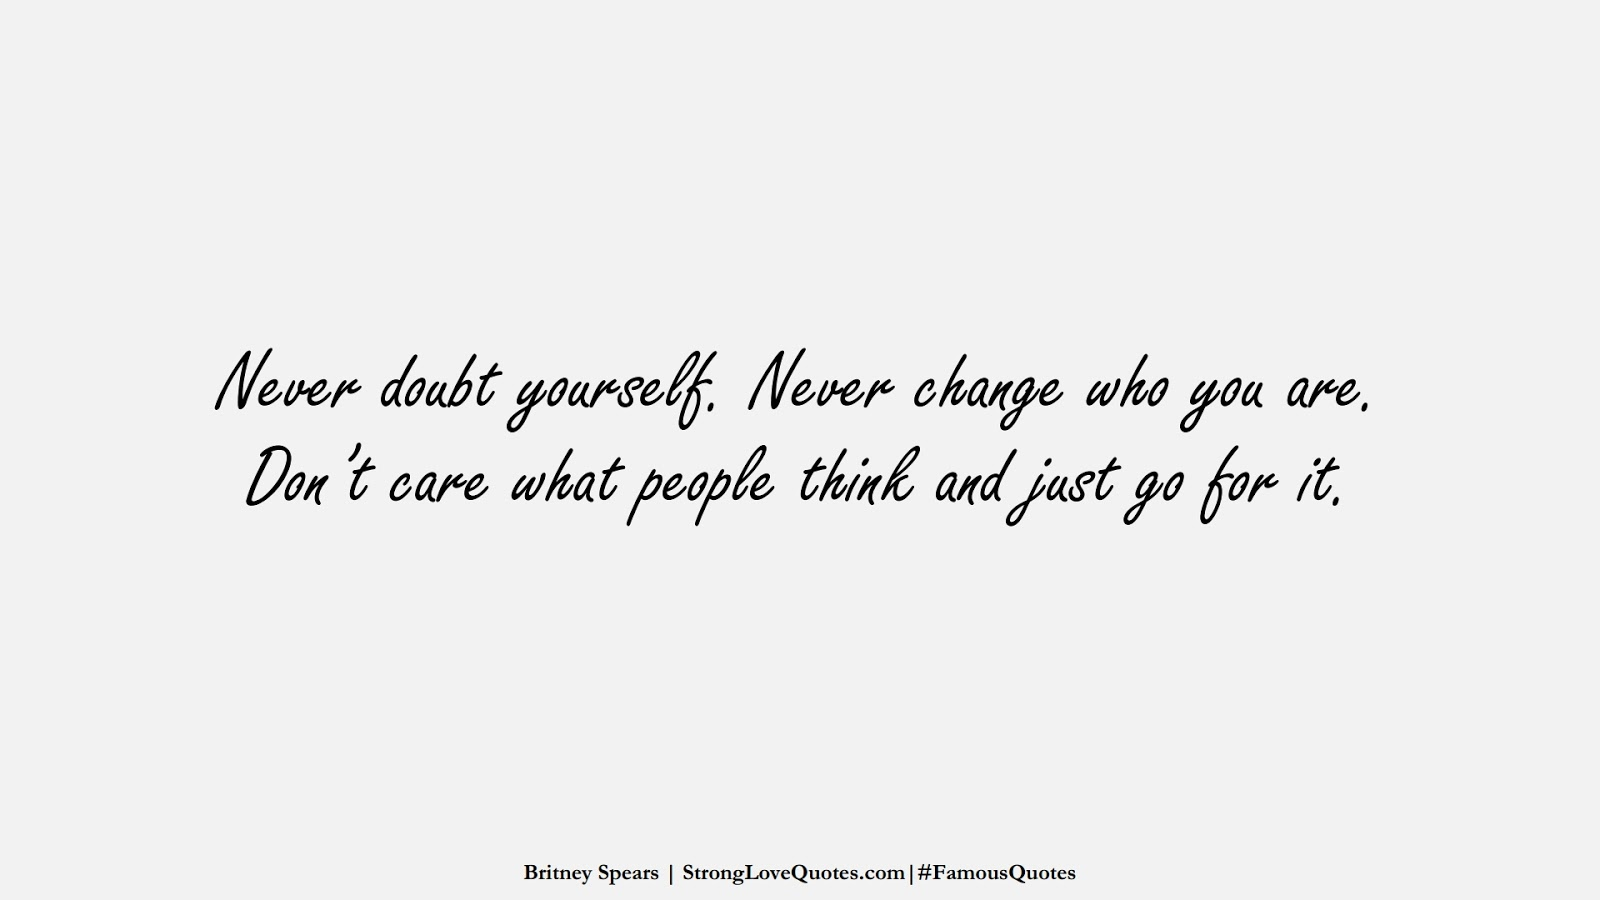 Never doubt yourself. Never change who you are. Don't care what people think and just go for it. (Britney Spears);  #FamousQuotes